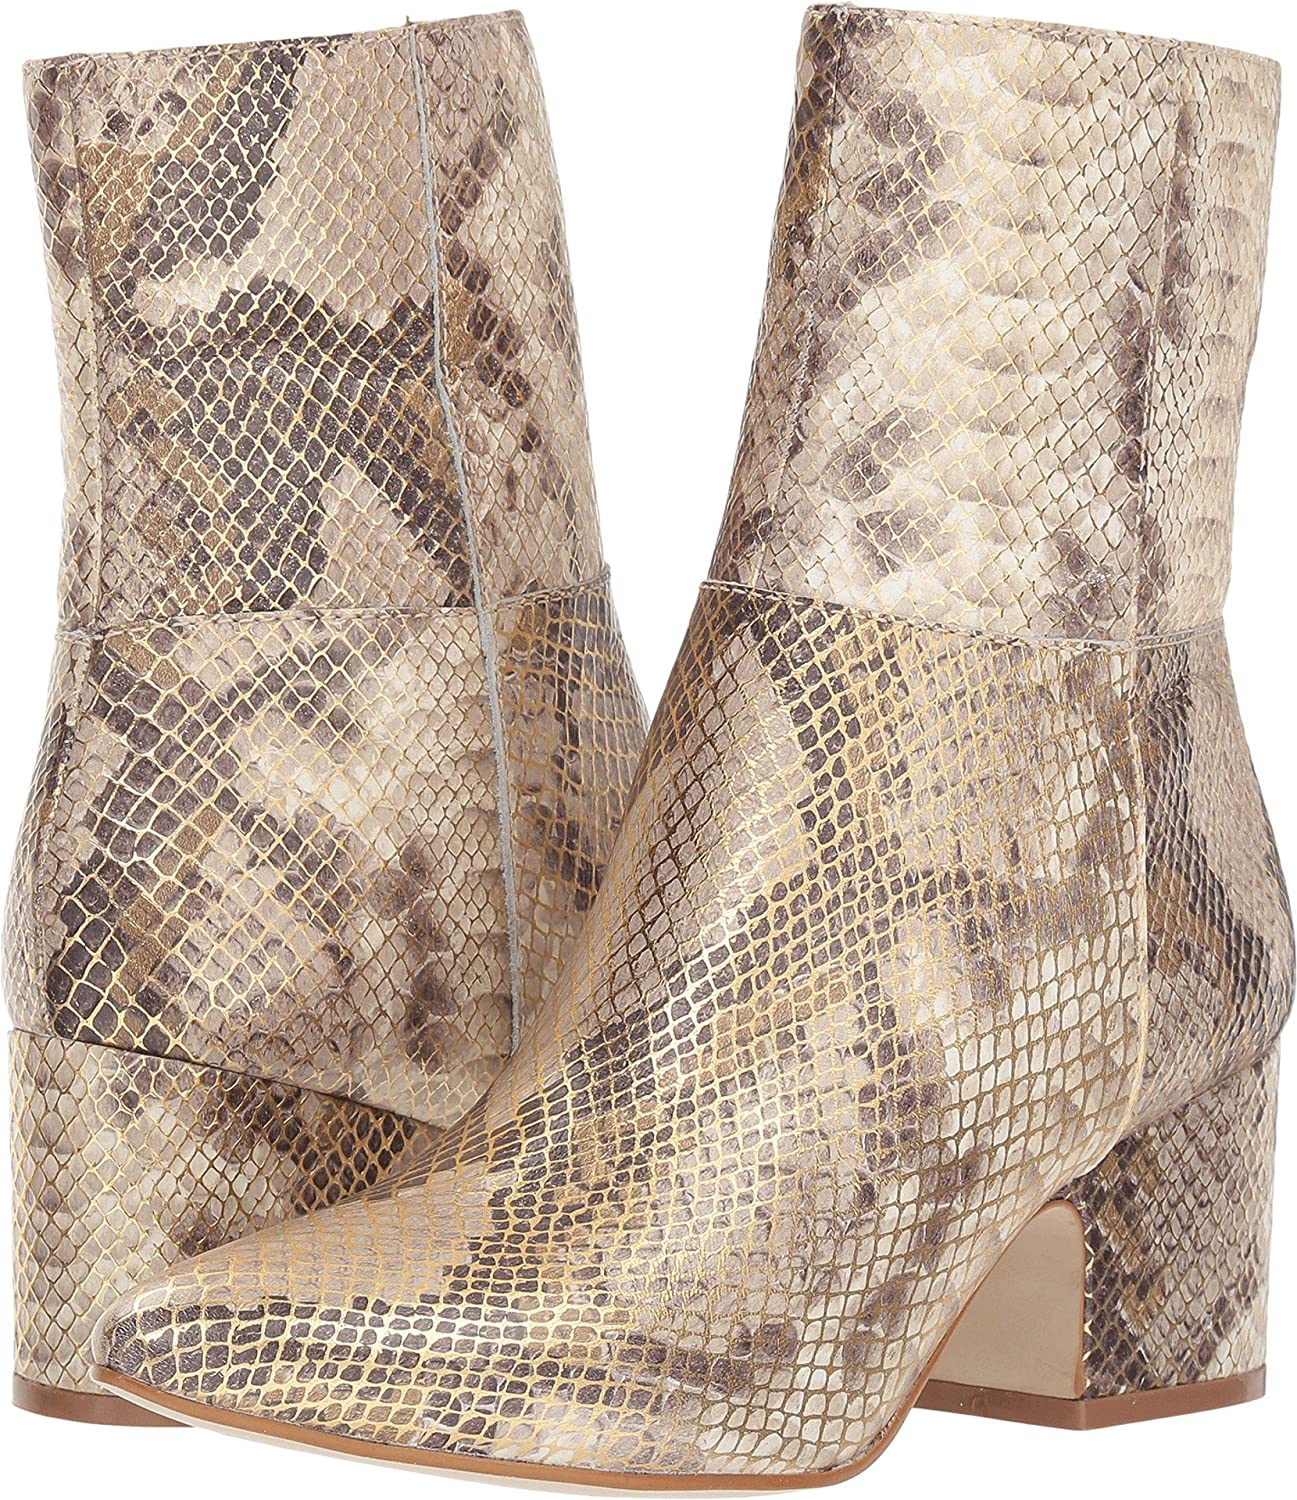 Matisse Women's at Ease Ankle Boot B07CZ1CVX1 7 M US|Metallic Snake Leather